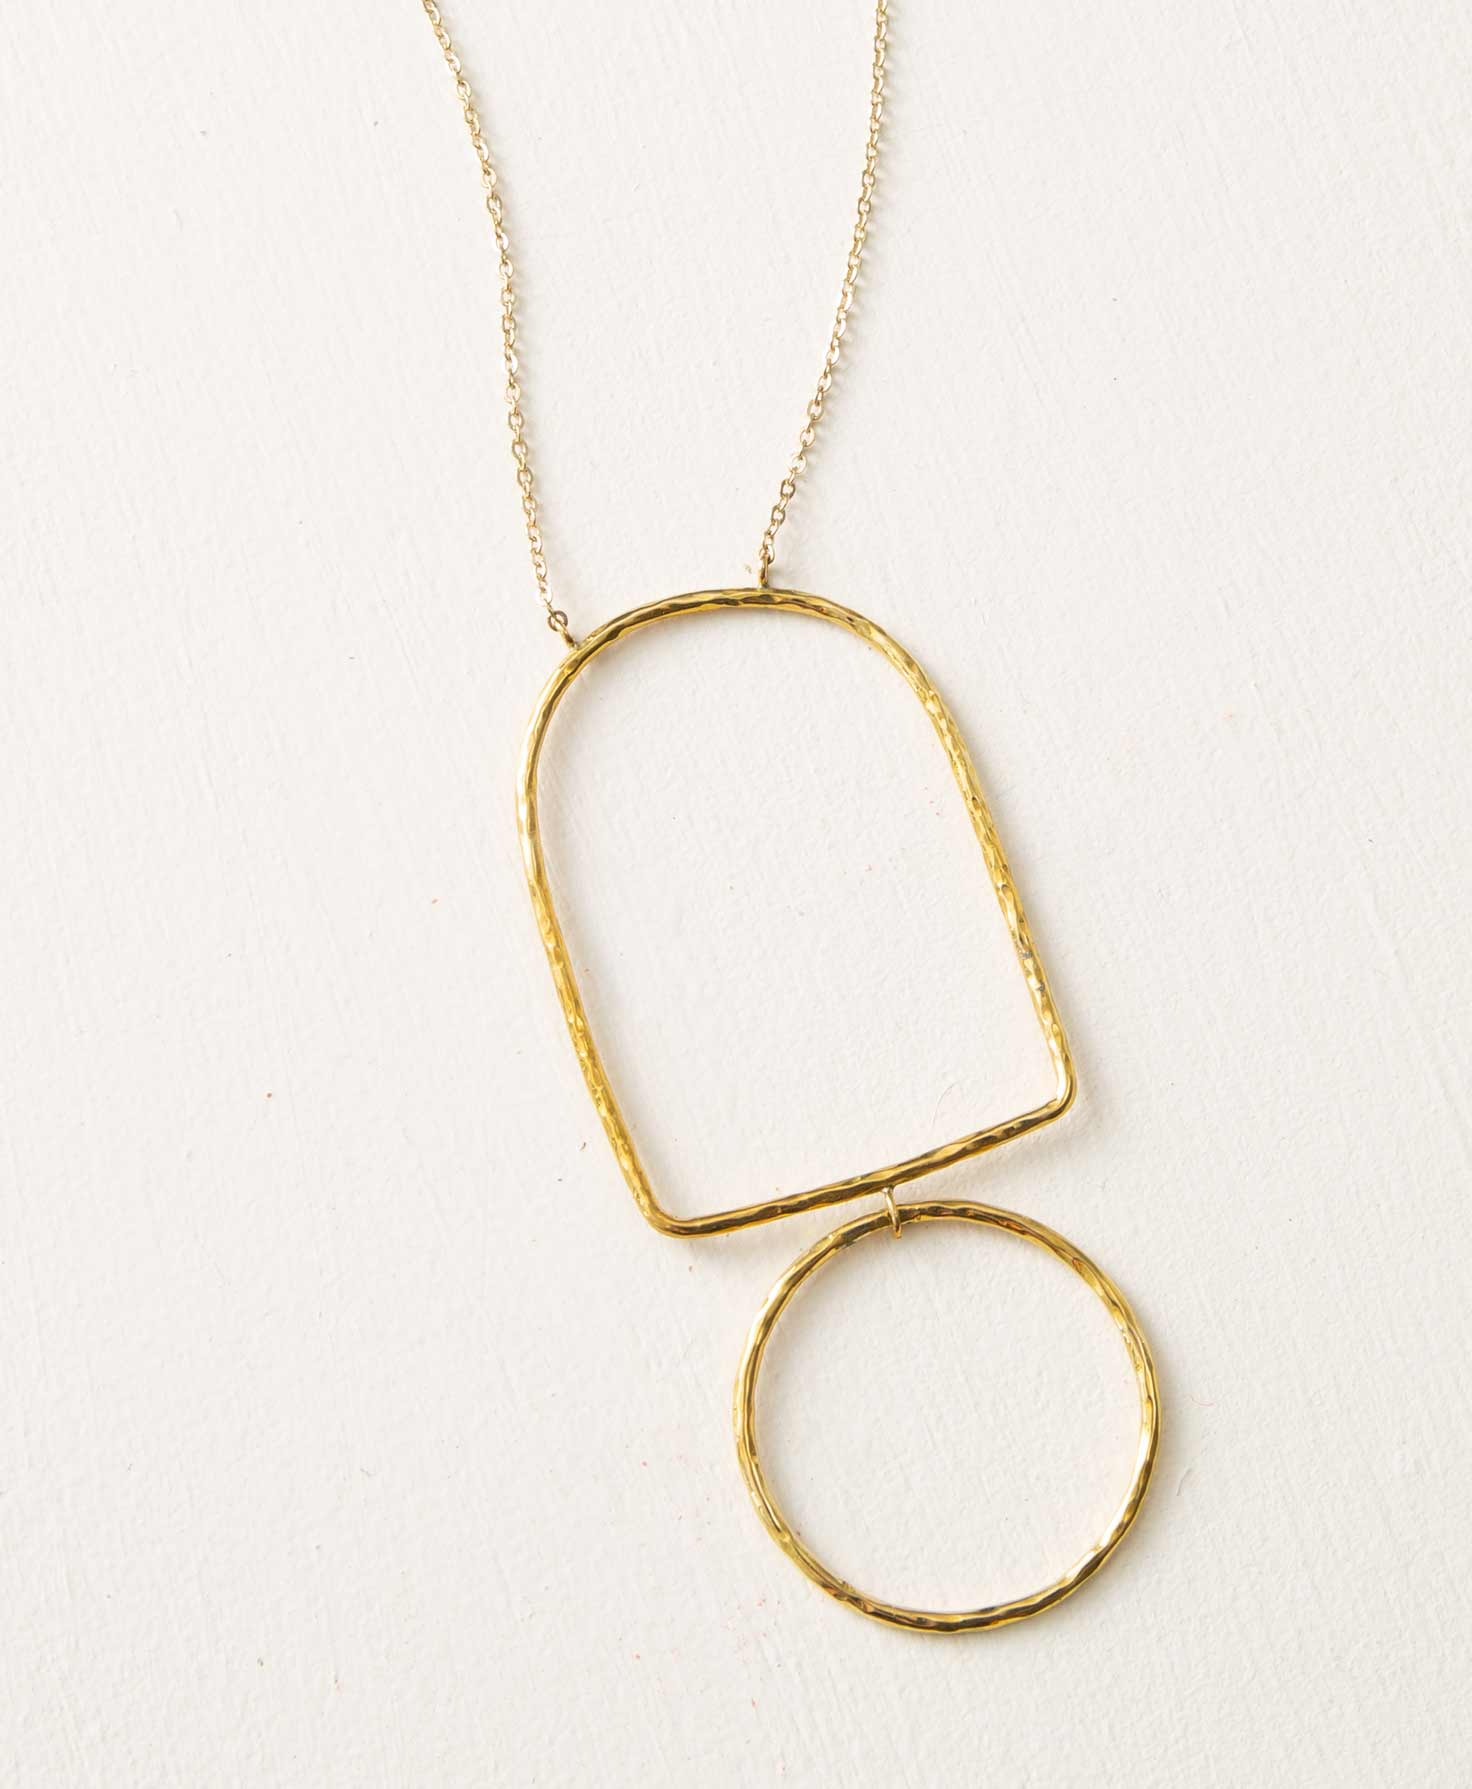 The Arcade Necklace rests on a flat white surface. A long brass-colored chain is accented with a large brass pendant. The pendant is made of rods of hammered brass formed into geometric shapes. There is a rounded rectangle-shaped piece linked to a circle-shaped piece below it. The pendant is affixed so it does not slide on the chain.